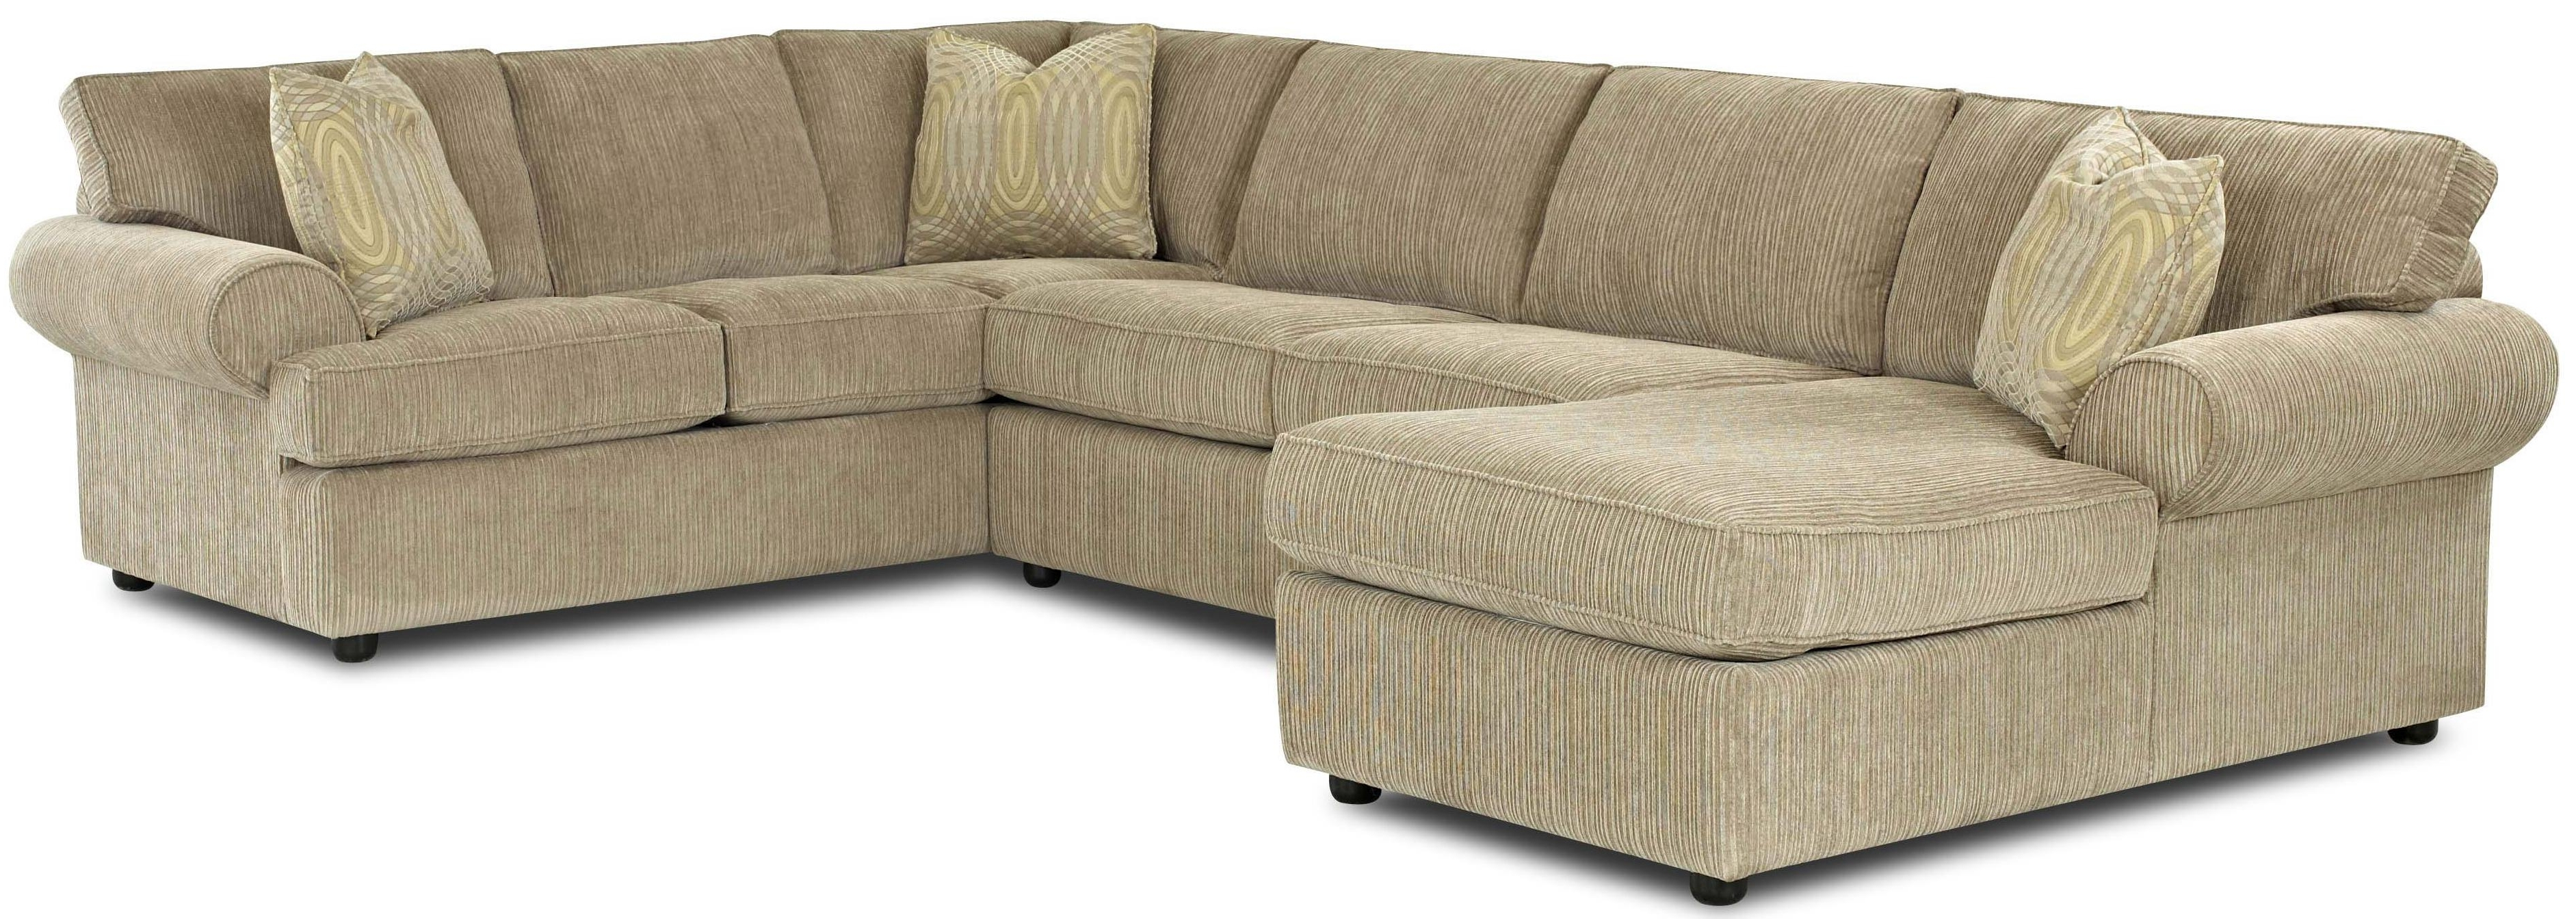 Popular Sectional Sofas With High Backs For Brown Velvet Sectional Sofa With High Back And Grey Cushions Plus (View 18 of 20)